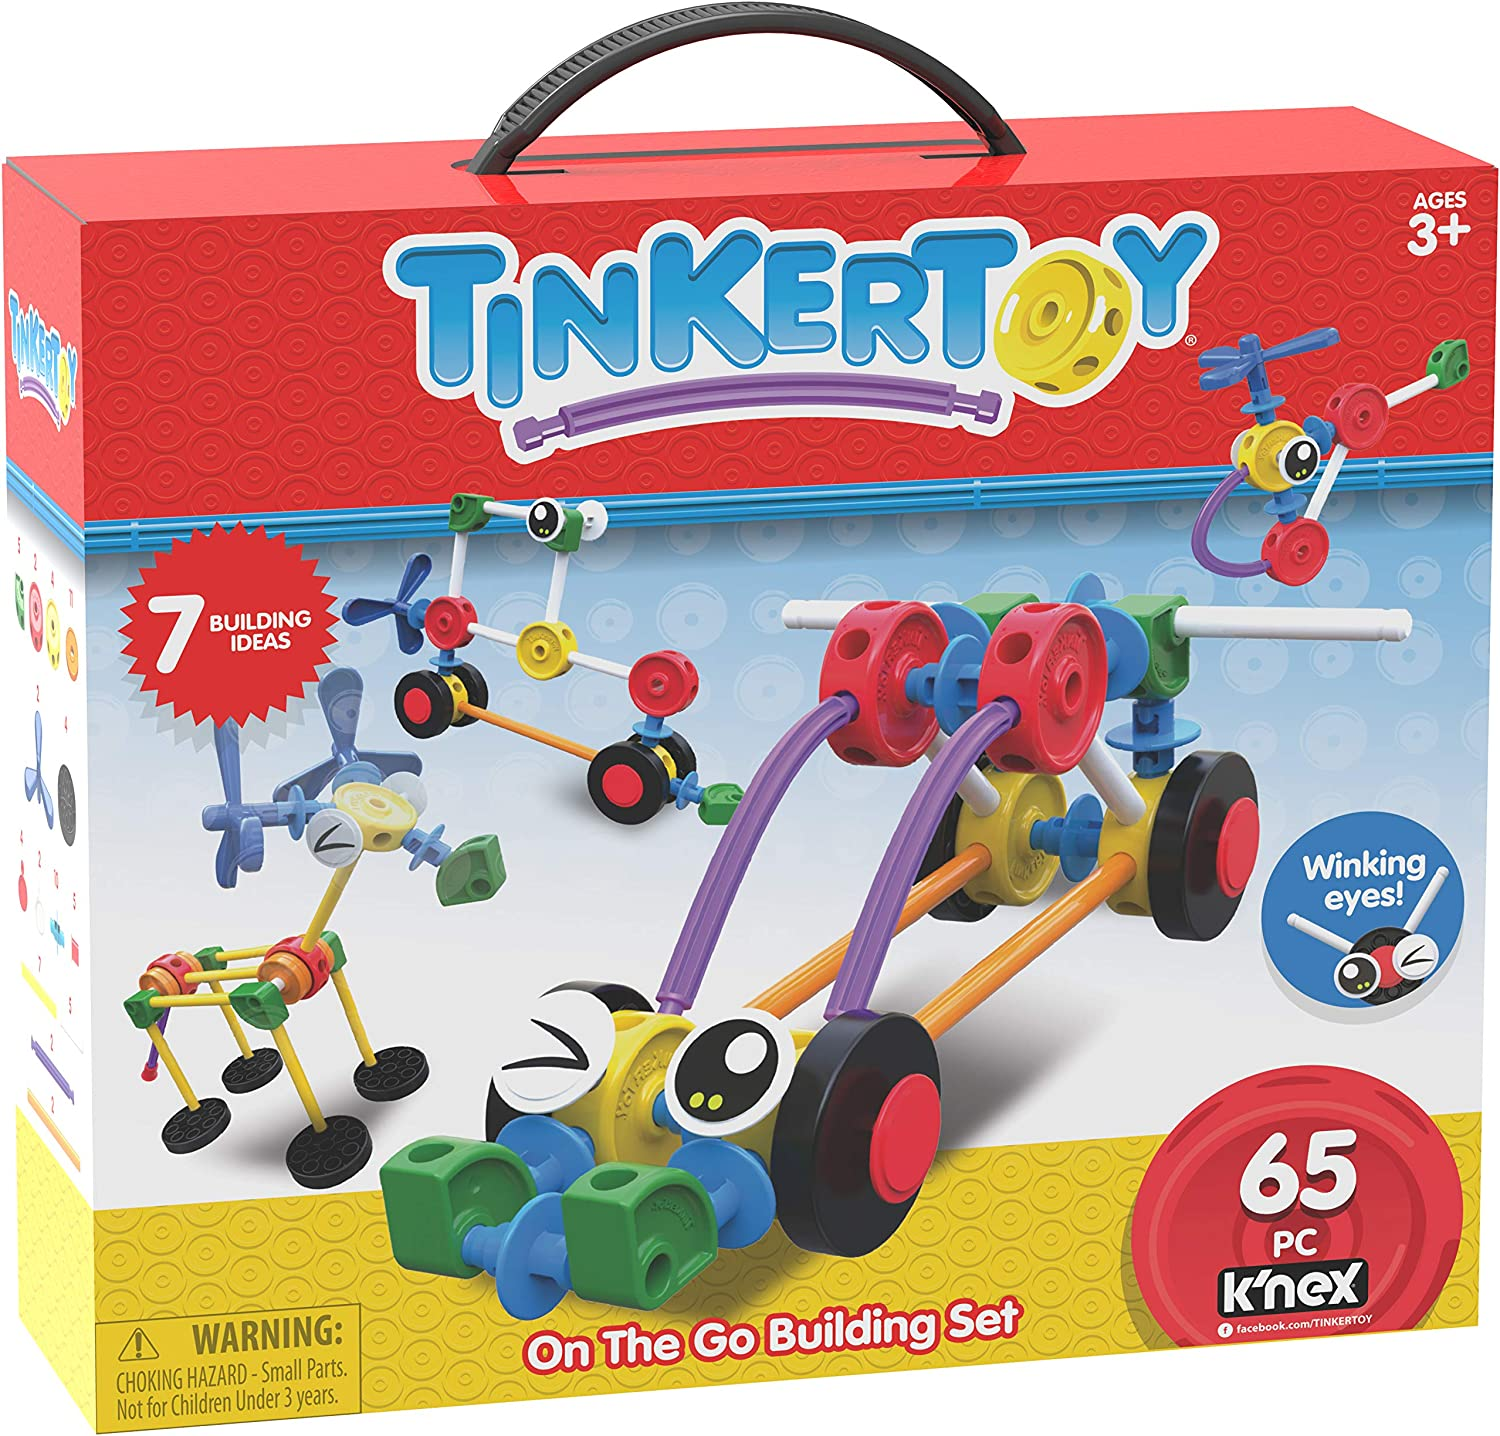 Tinkertoy On The Go Building Set - 65 Parts - Ages 3 & Up - Creative Preschool Toy